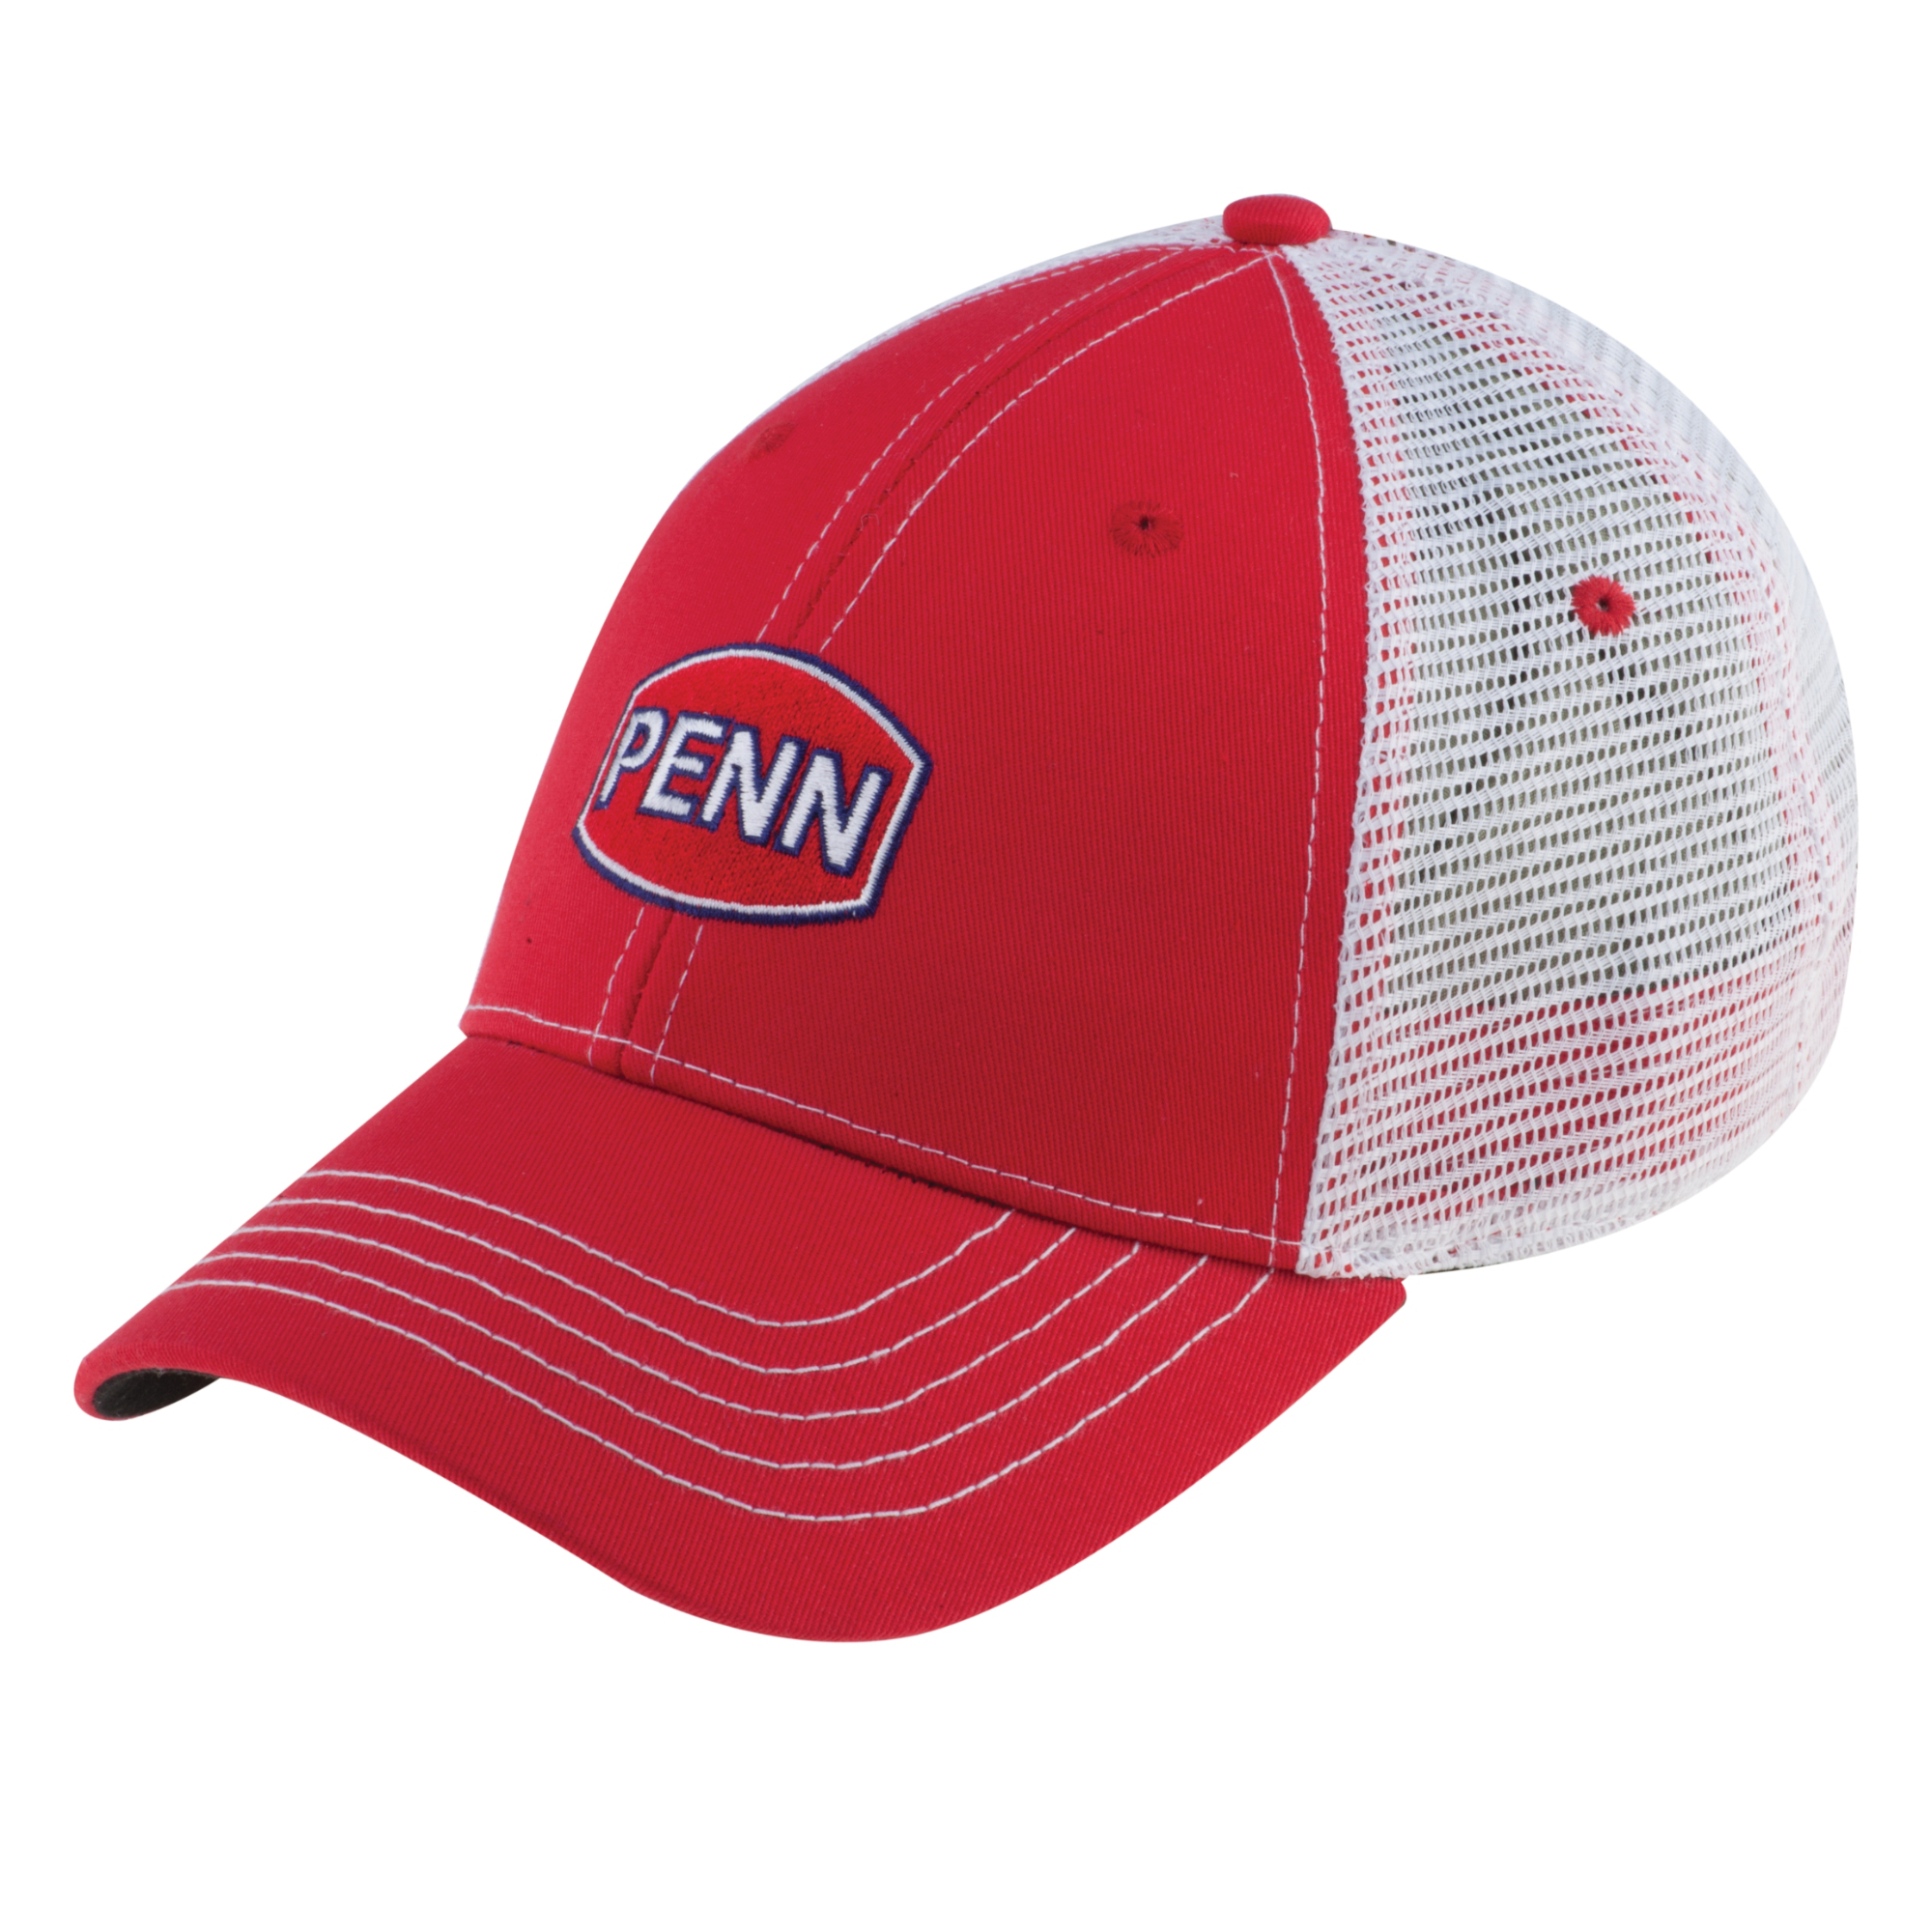 Penn Hat With White Mesh Backing